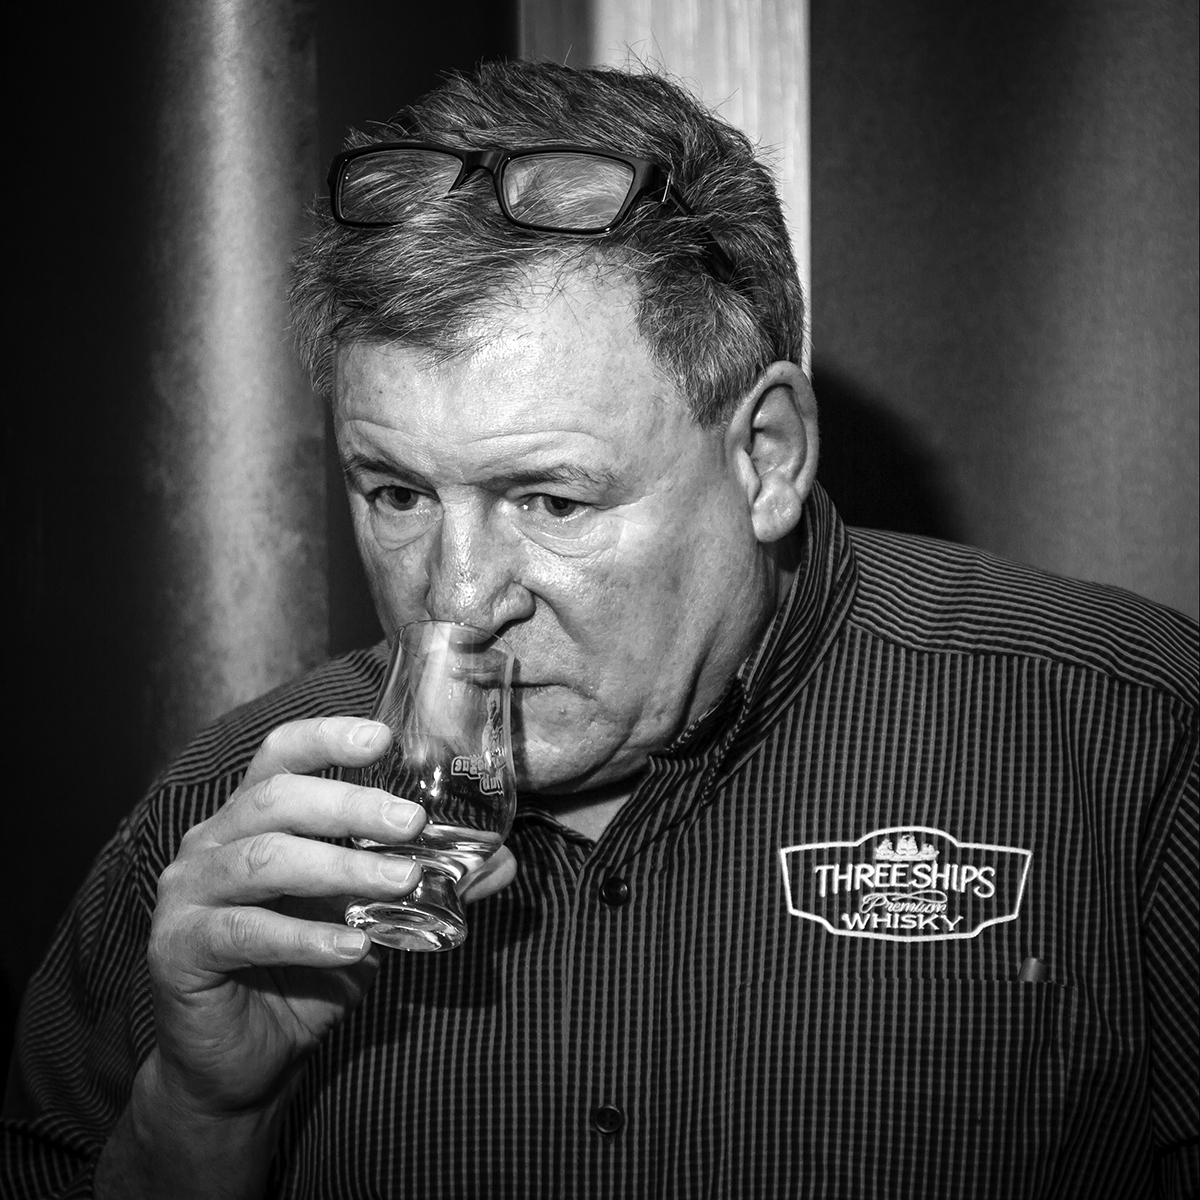 Distell's Andy Watts noses a whisky during the New Brunswick Spirits Festival on November 17, 2017. Photo ©2017, Mark Gillespie/CaskStrength Media.